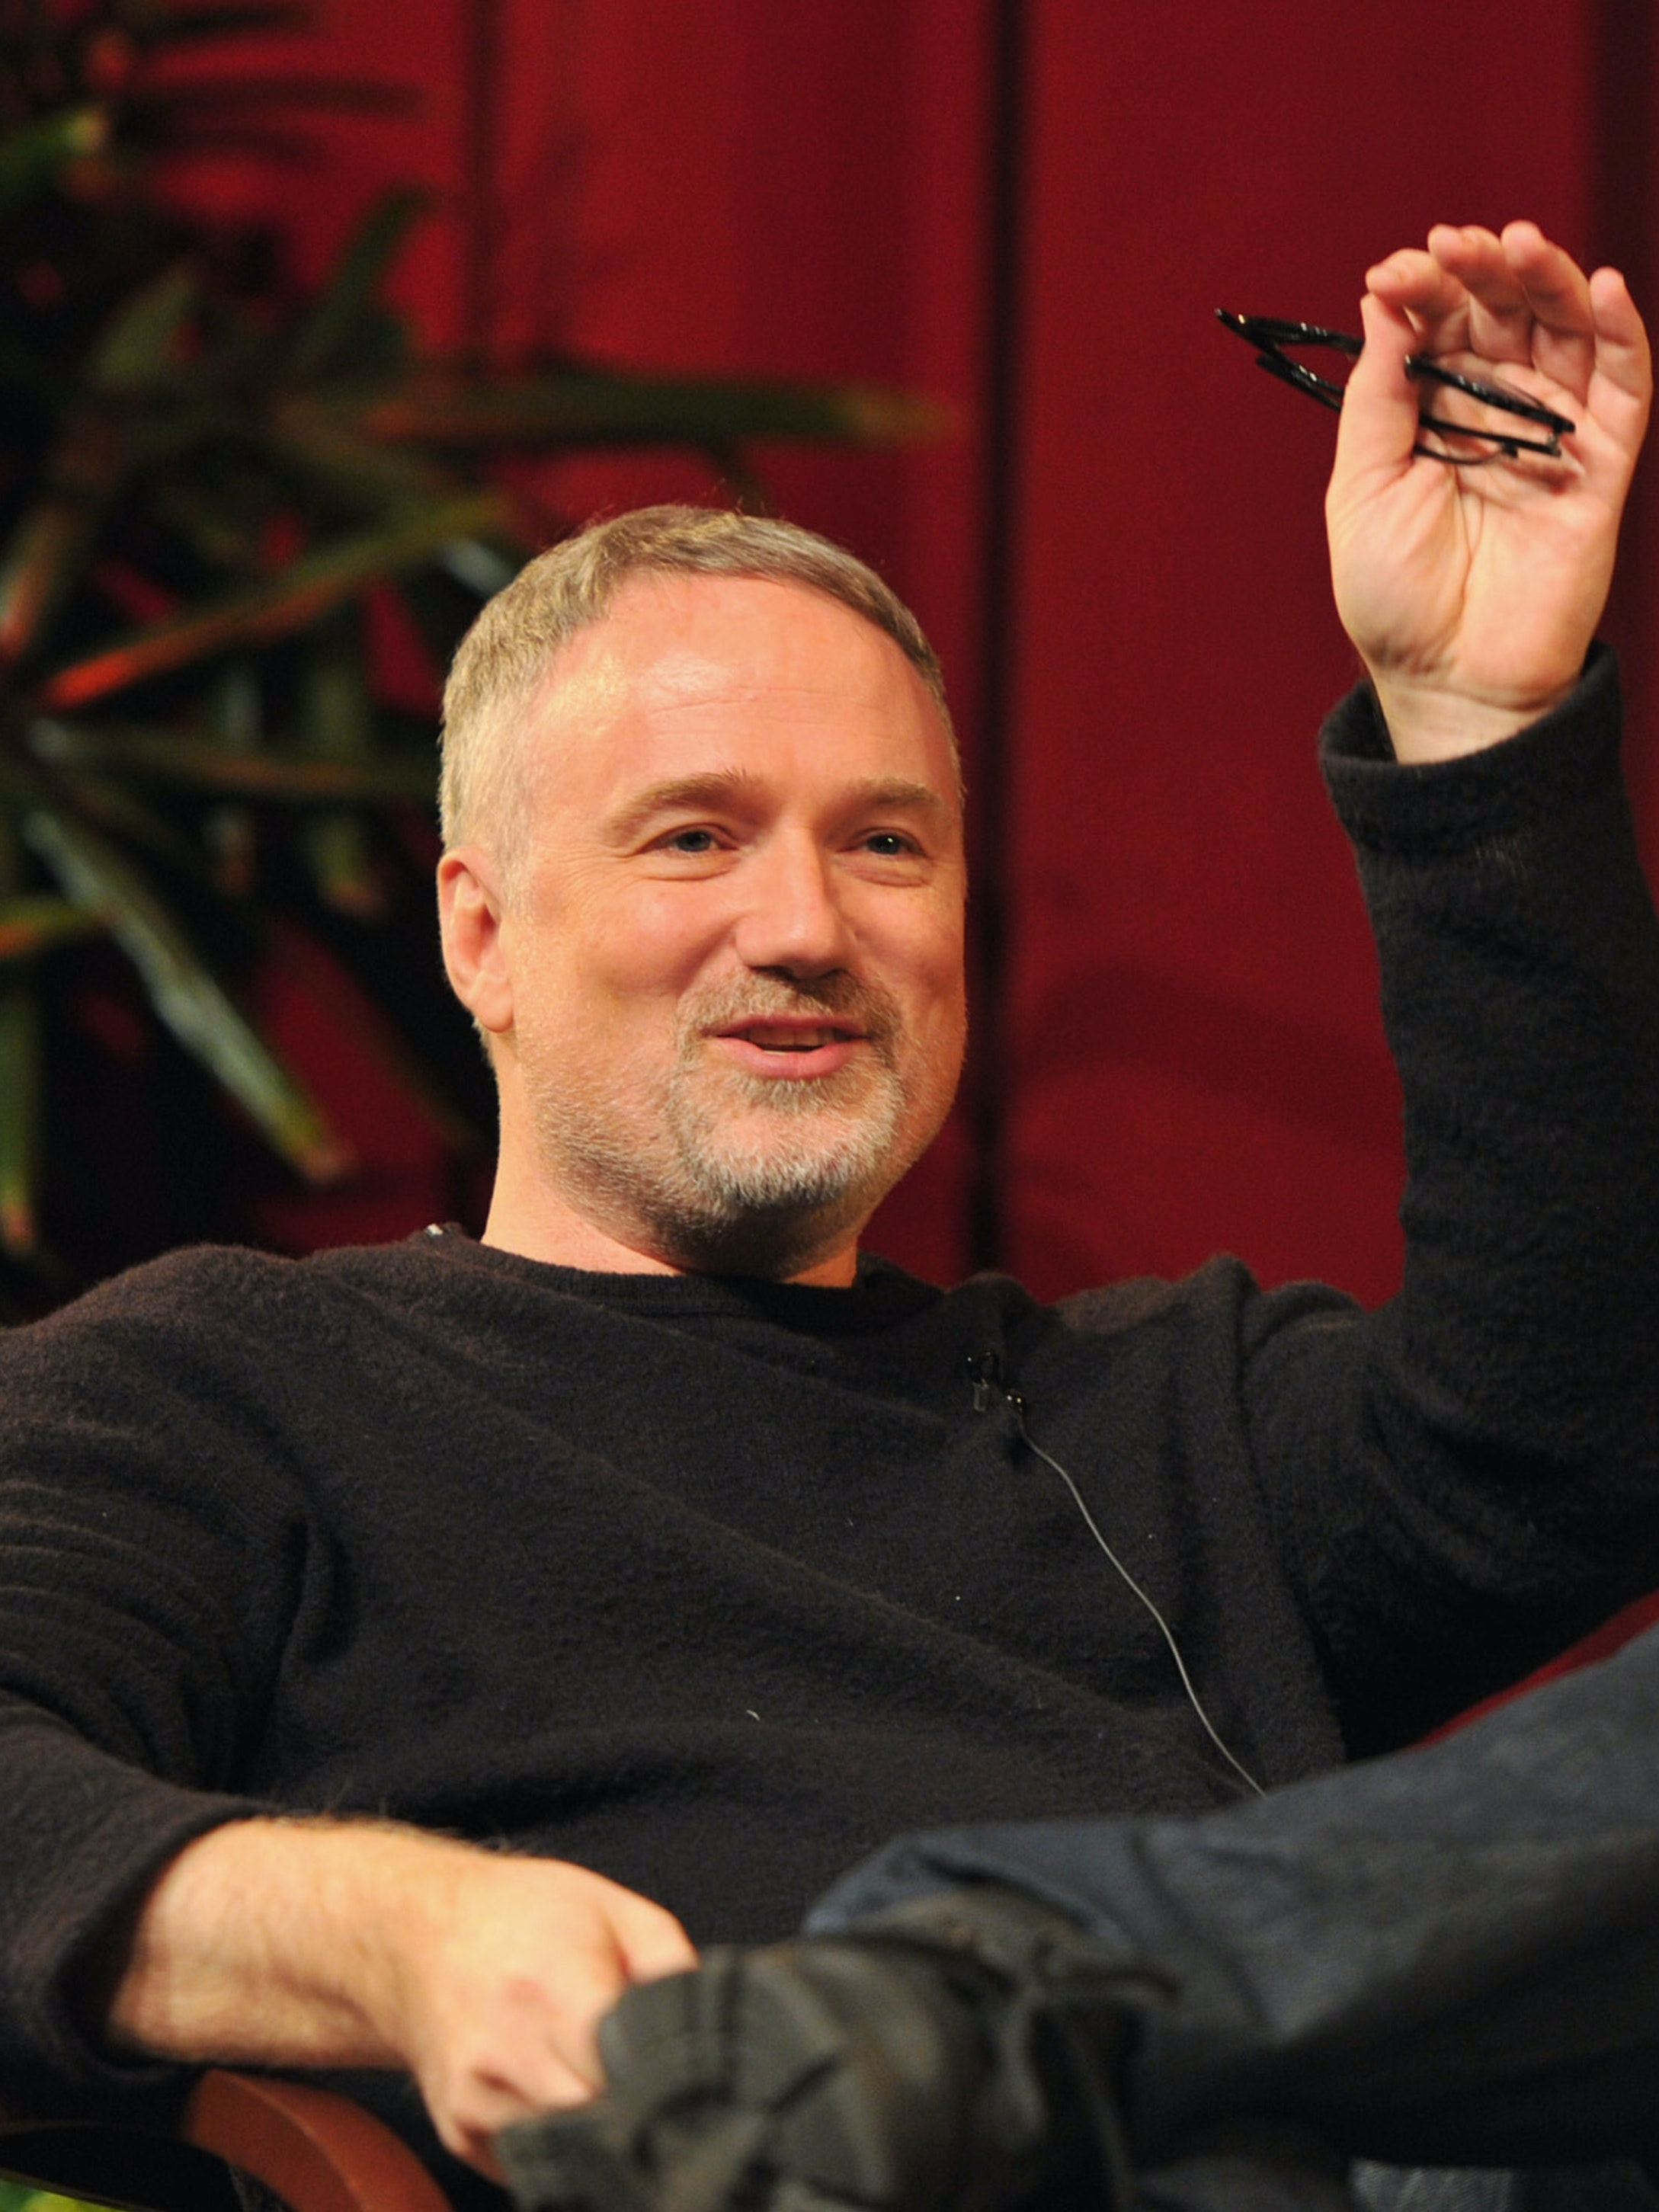 HOLLYWOOD, CA - JANUARY 28:  Director David Fincher speaks onstage at the 63rd Annual Directors Guild Of America Awards Feature Film Symposium held at the DGA on January 28, 2012 in Hollywood, California.  (Photo by Alberto E. Rodriguez/Getty Images for DGA)